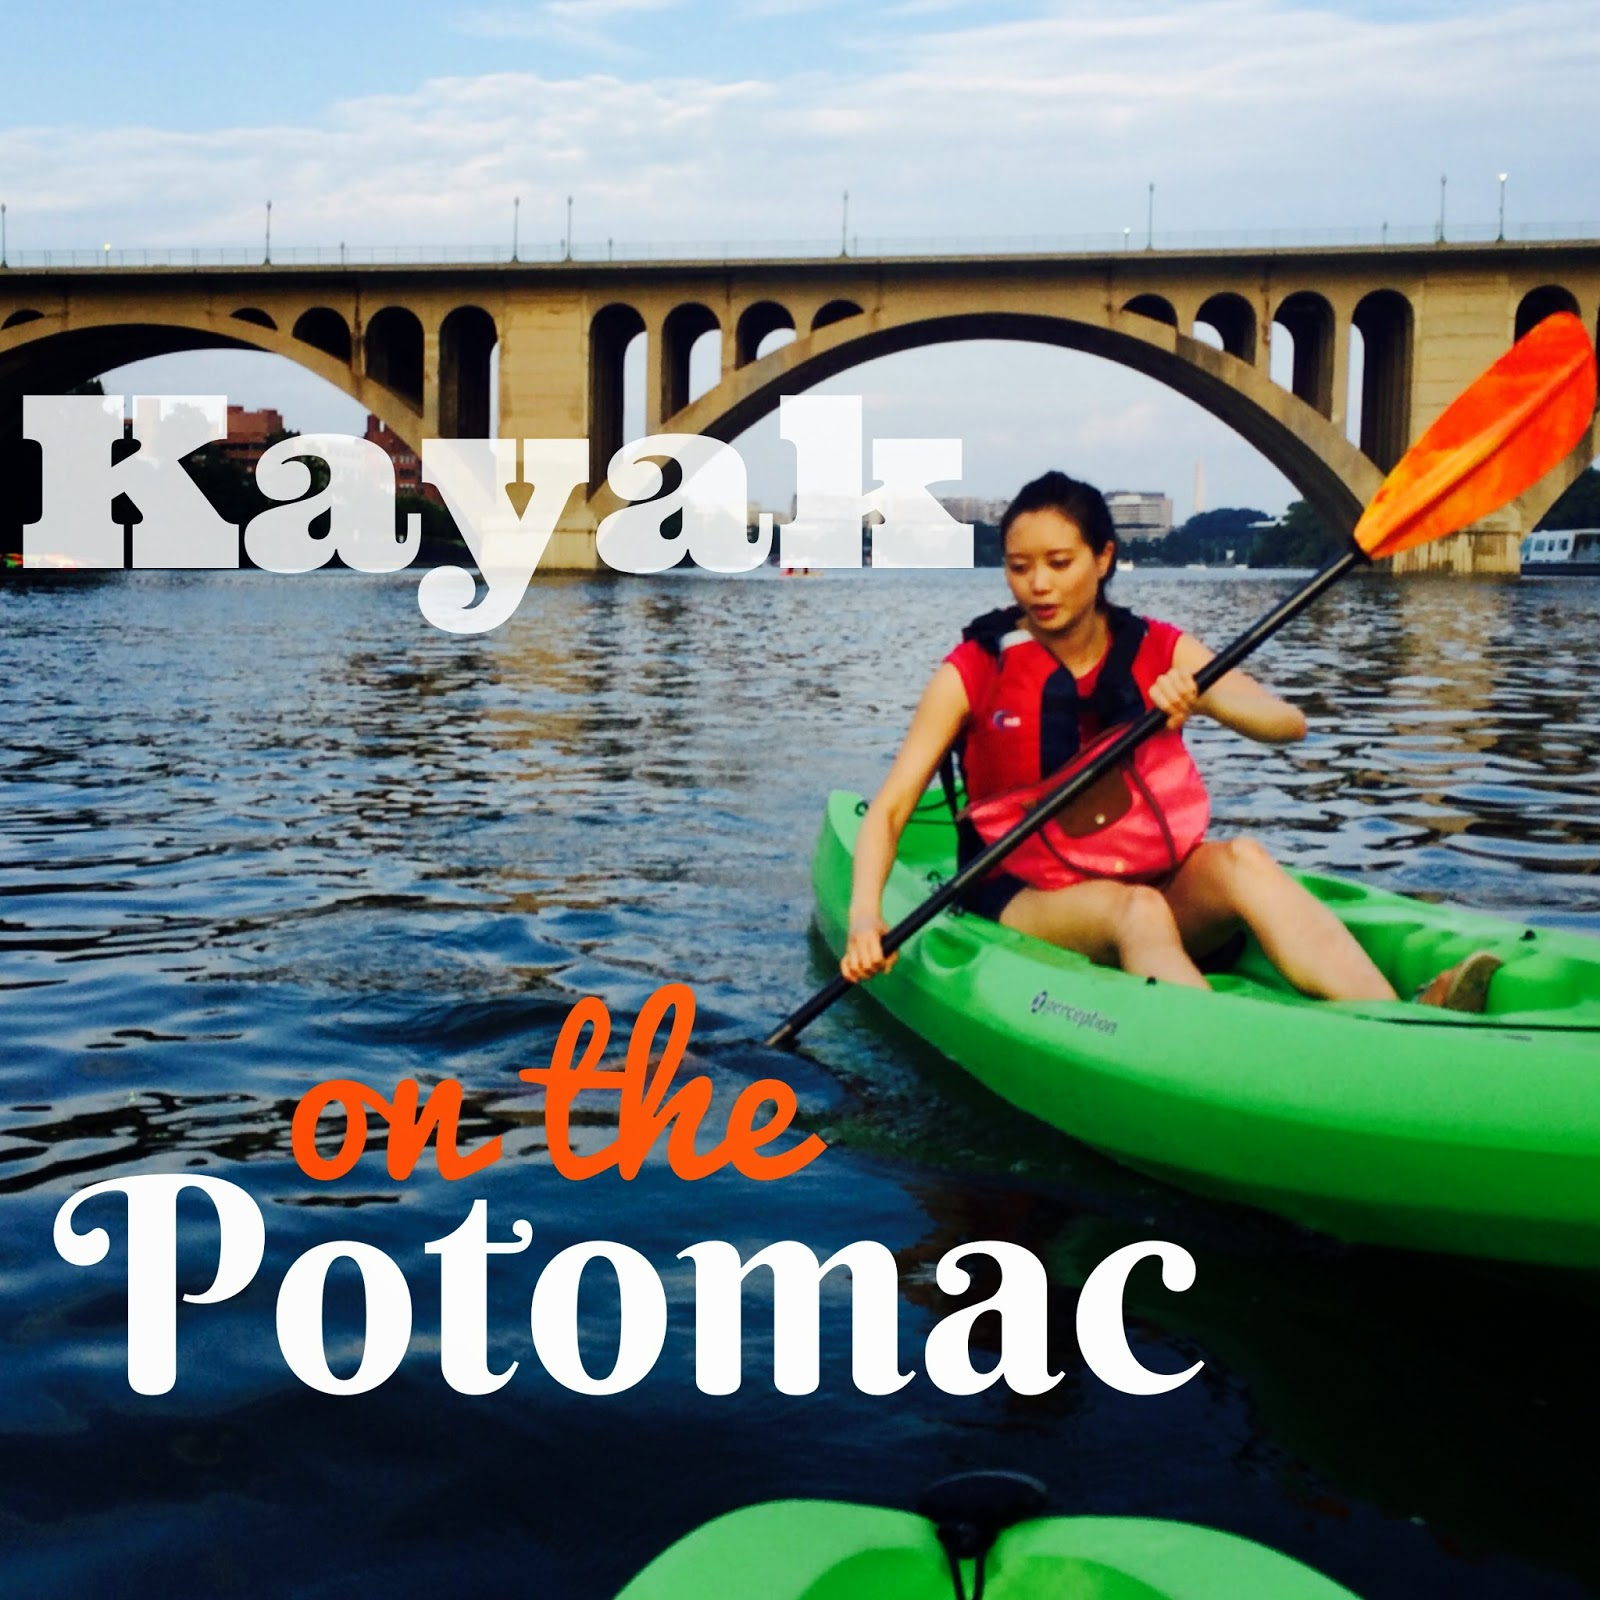 http://melthemidnightbaker.blogspot.com/2014/07/kayak-on-potomac.html#more